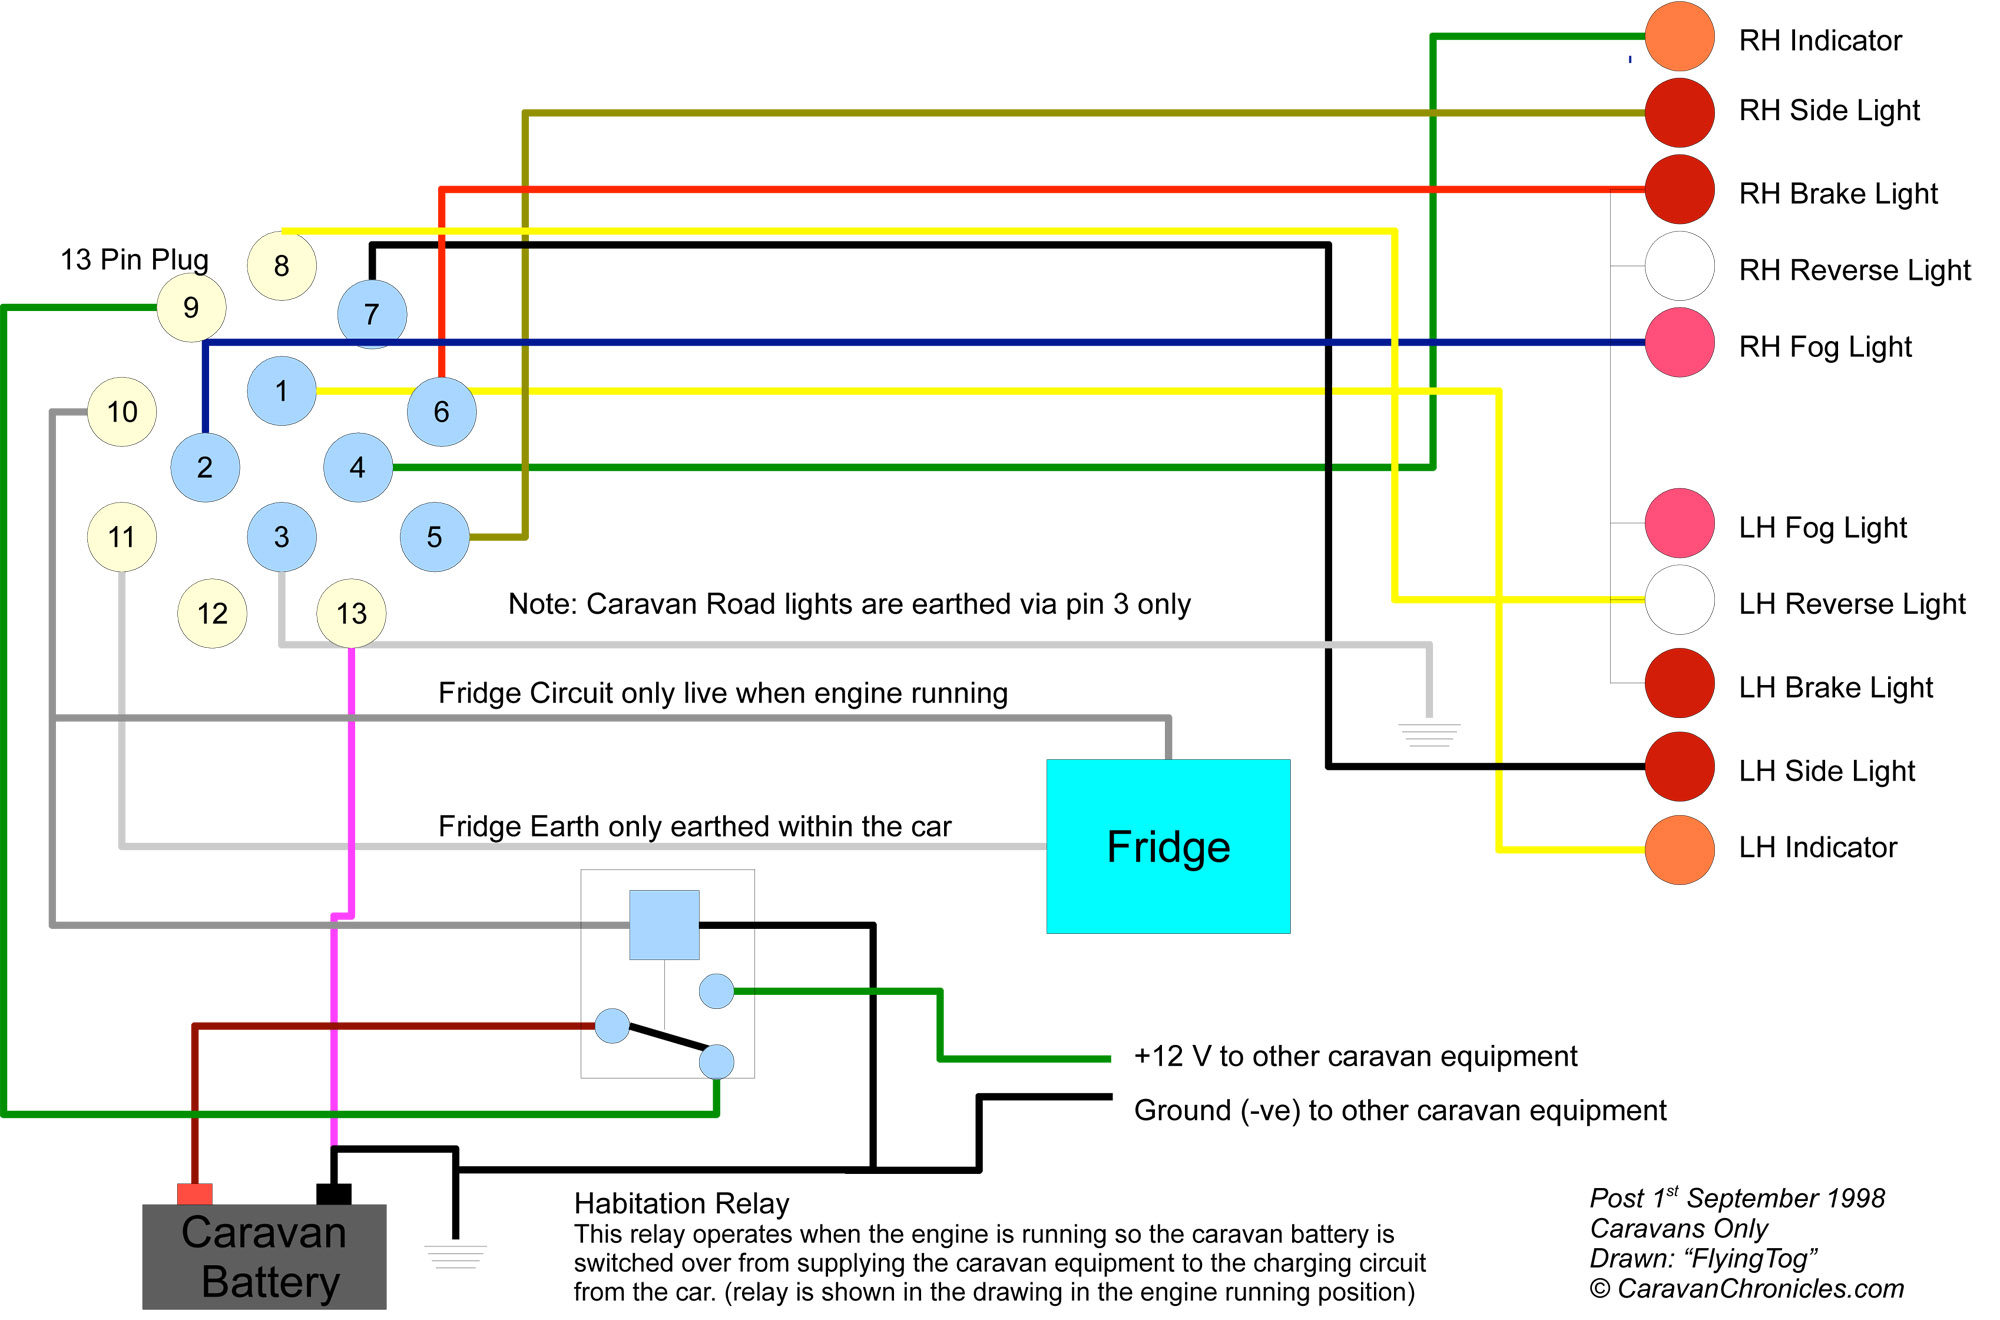 caravan wiring 13 pin understanding caravan and tow car electrics caravan chronicles refrigerator wiring diagram pdf at gsmx.co